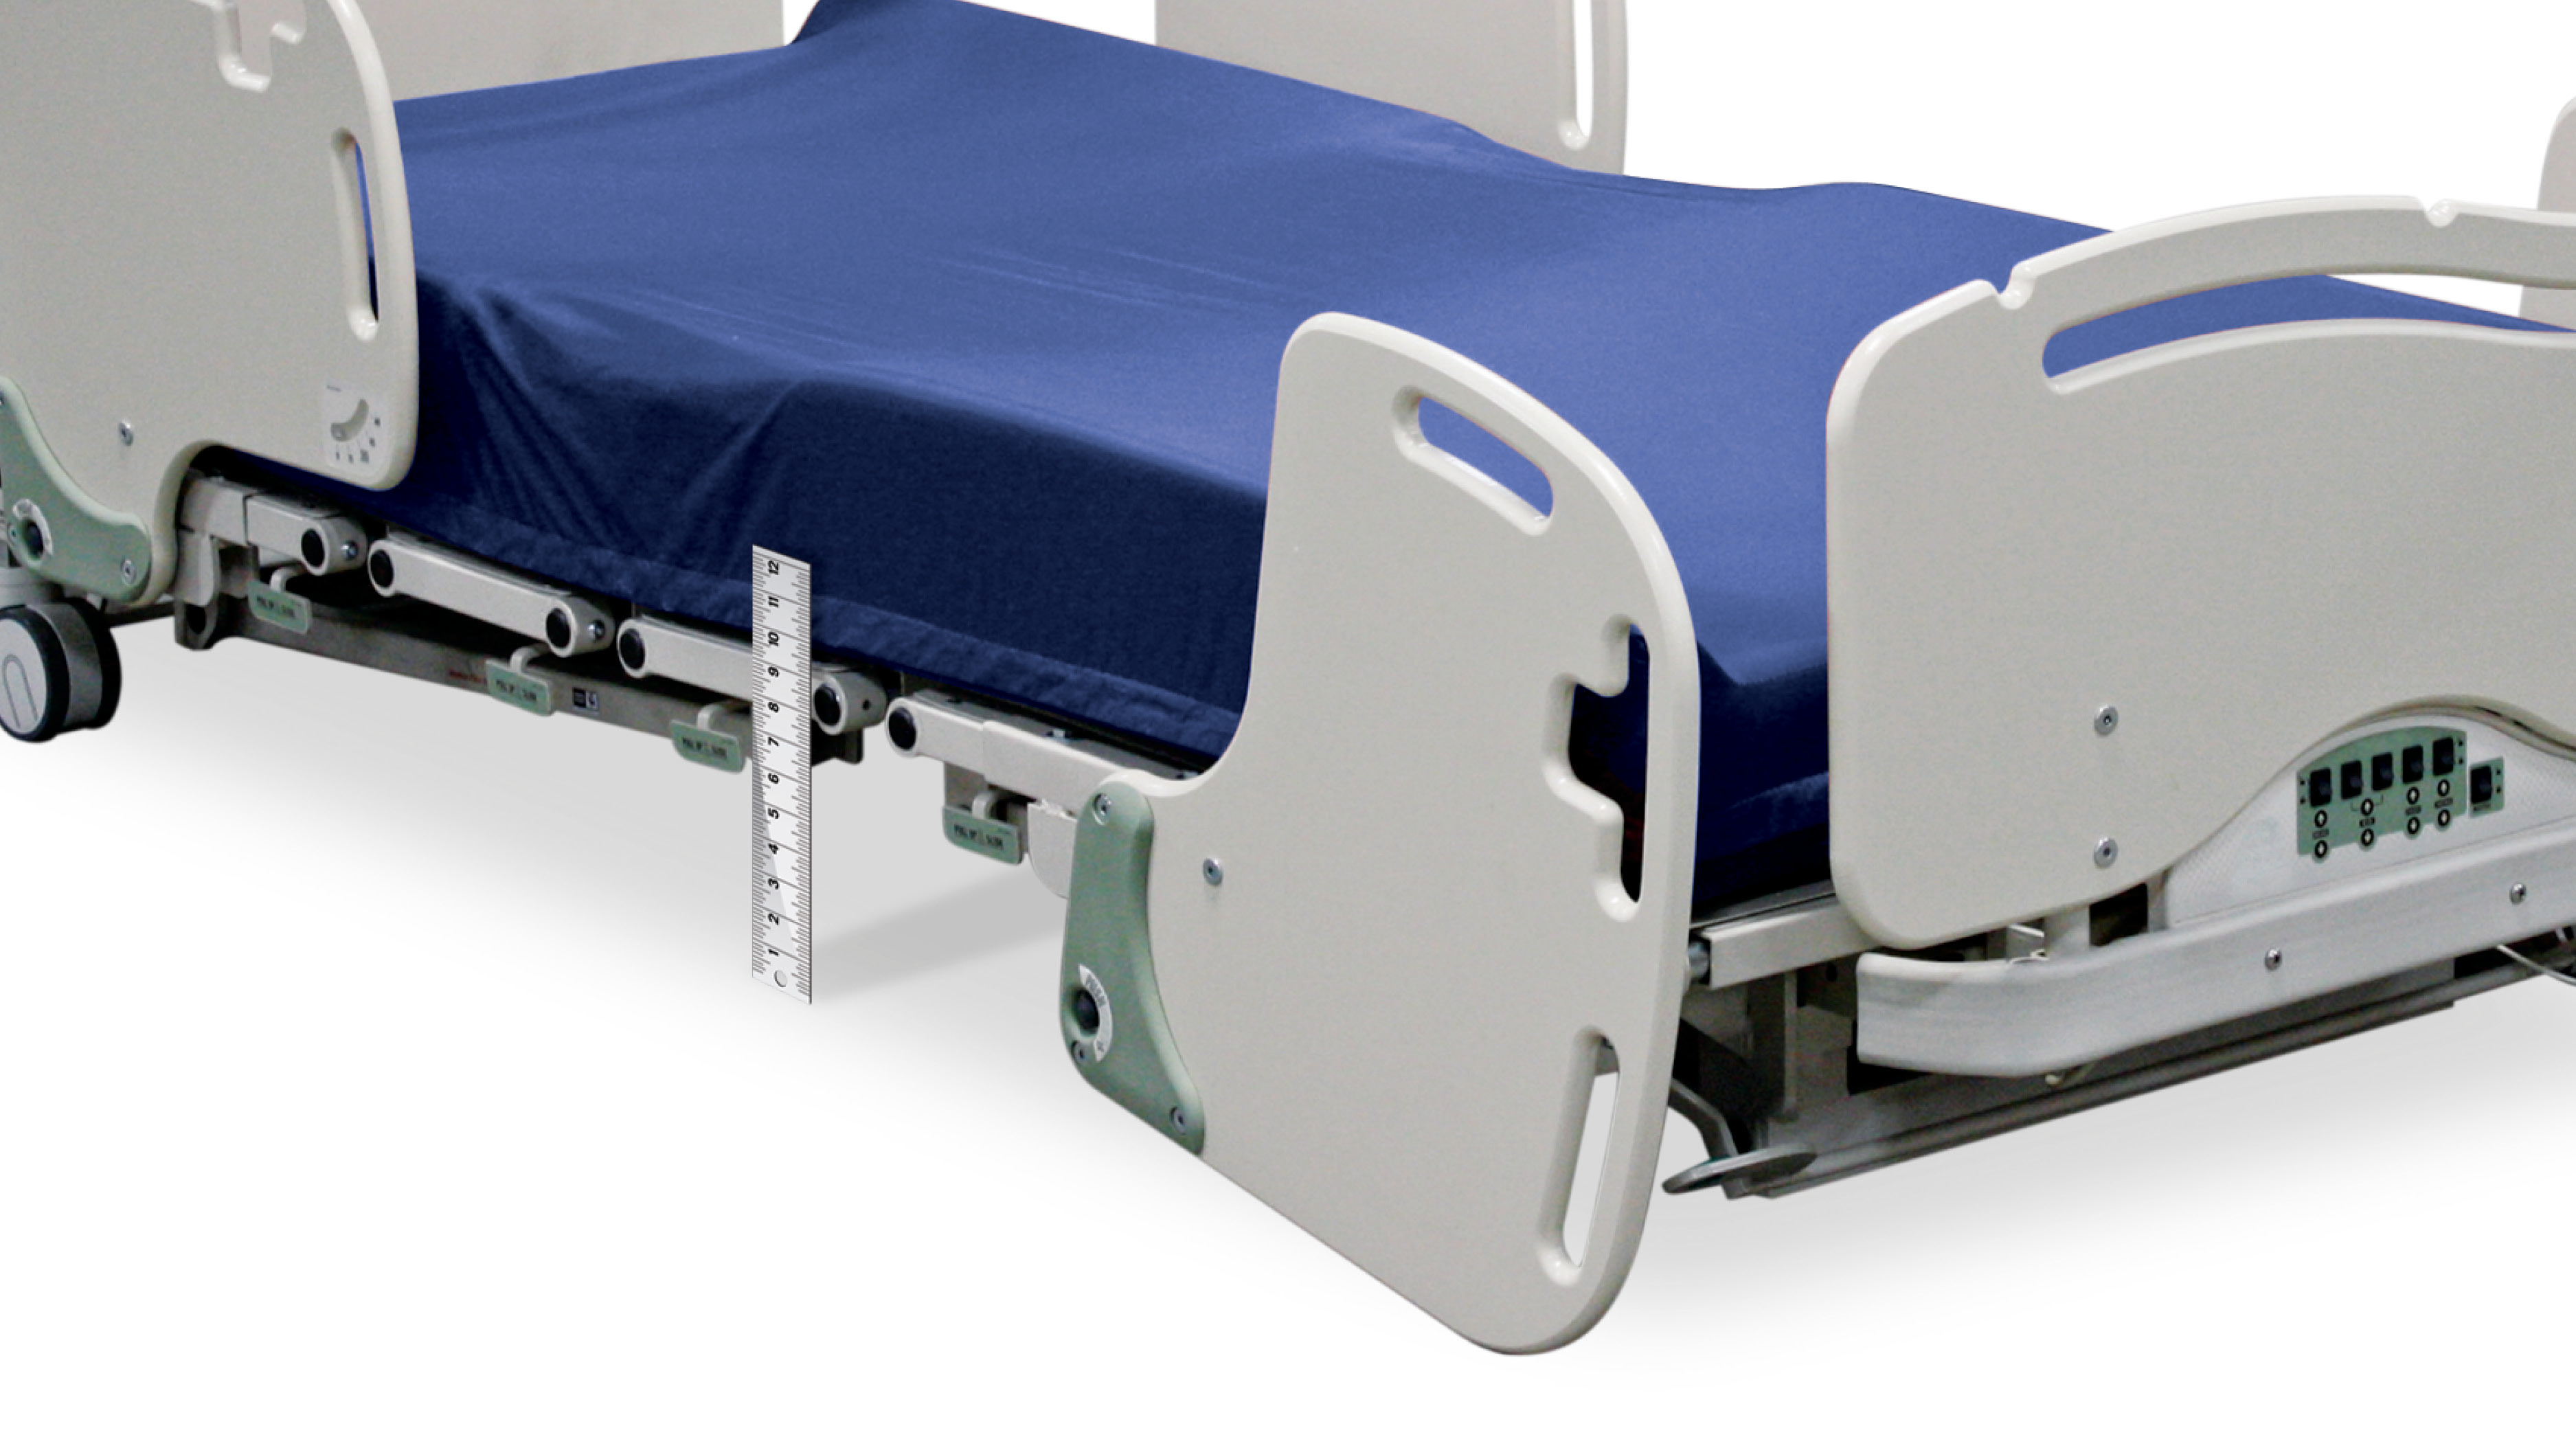 "With a deck low of 9"", Evolution® is the lowest full-feature bed frame"